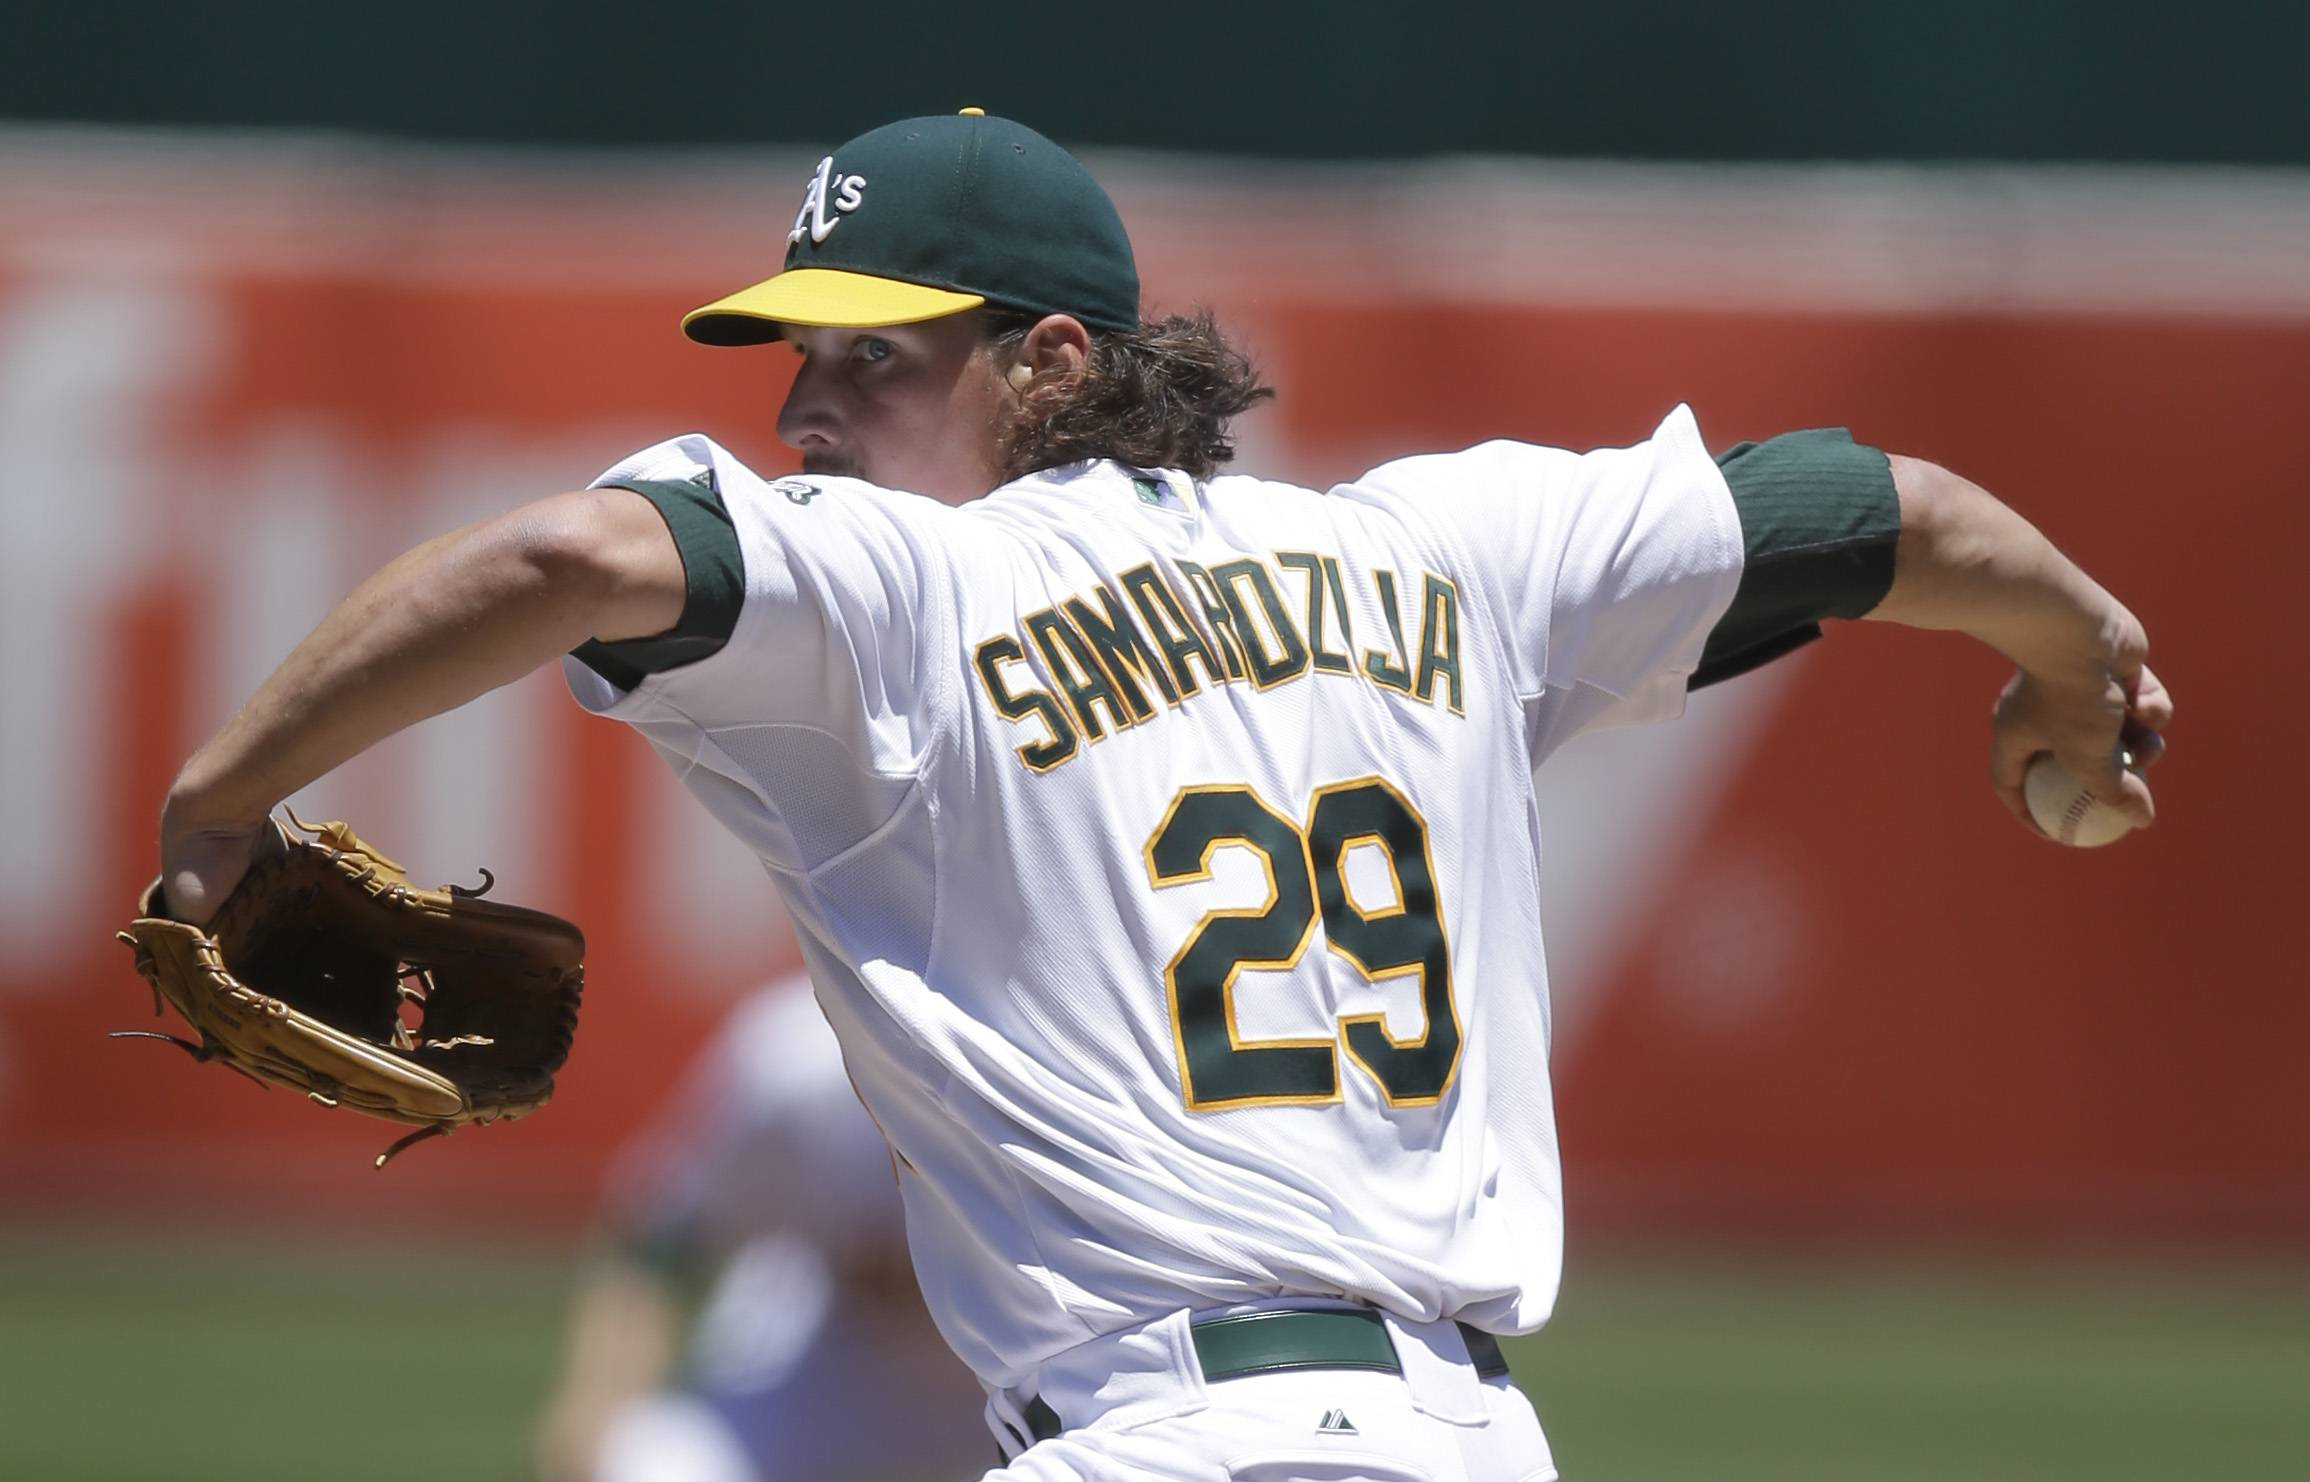 Oakland Athletics' Jeff Samardzija works against the Toronto Blue Jays in the first inning of a baseball game Sunday, July 6, 2014, in Oakland, Calif.